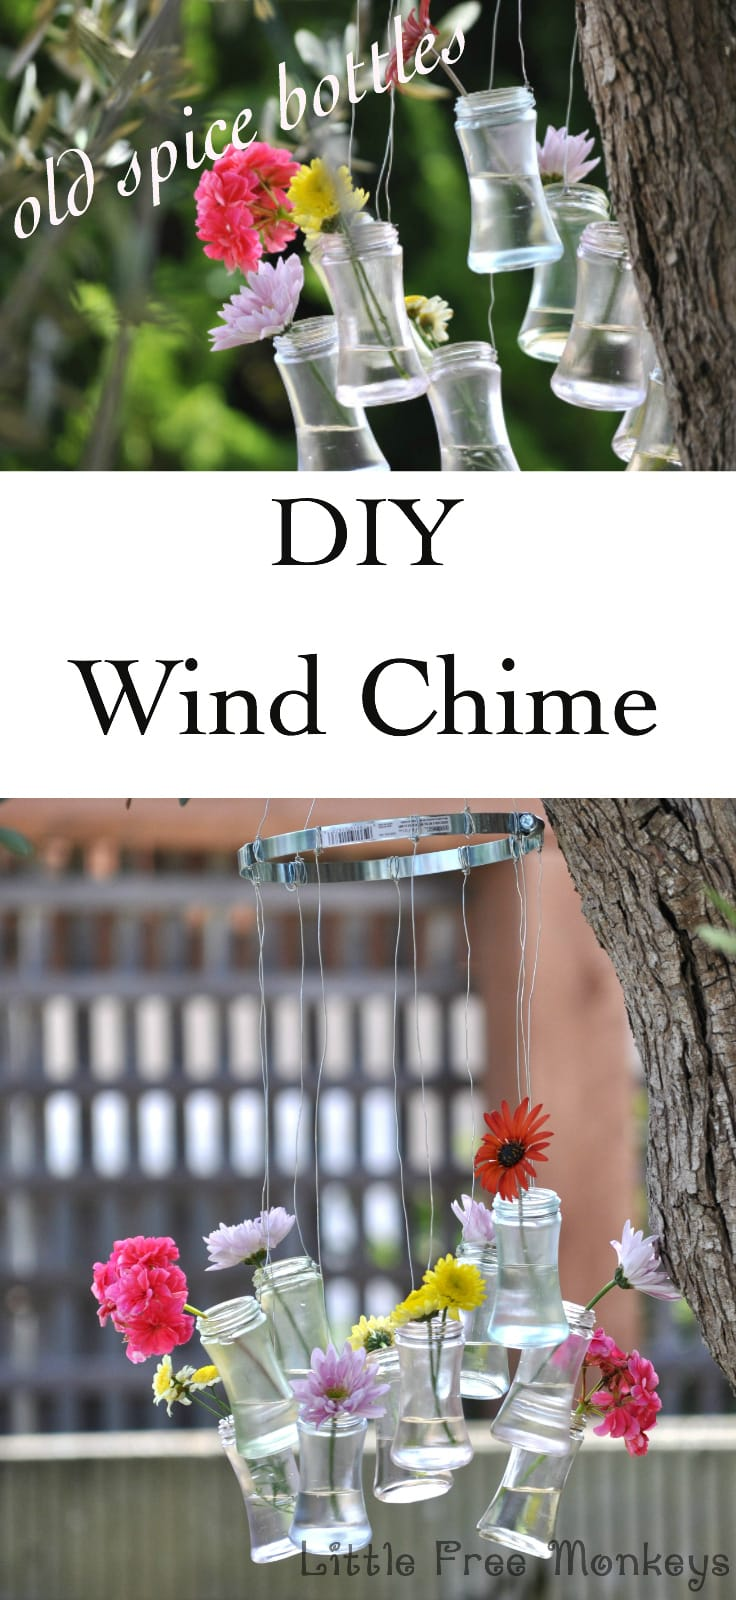 DIY wind chime from upcycled bottles - Little Free Monkeys